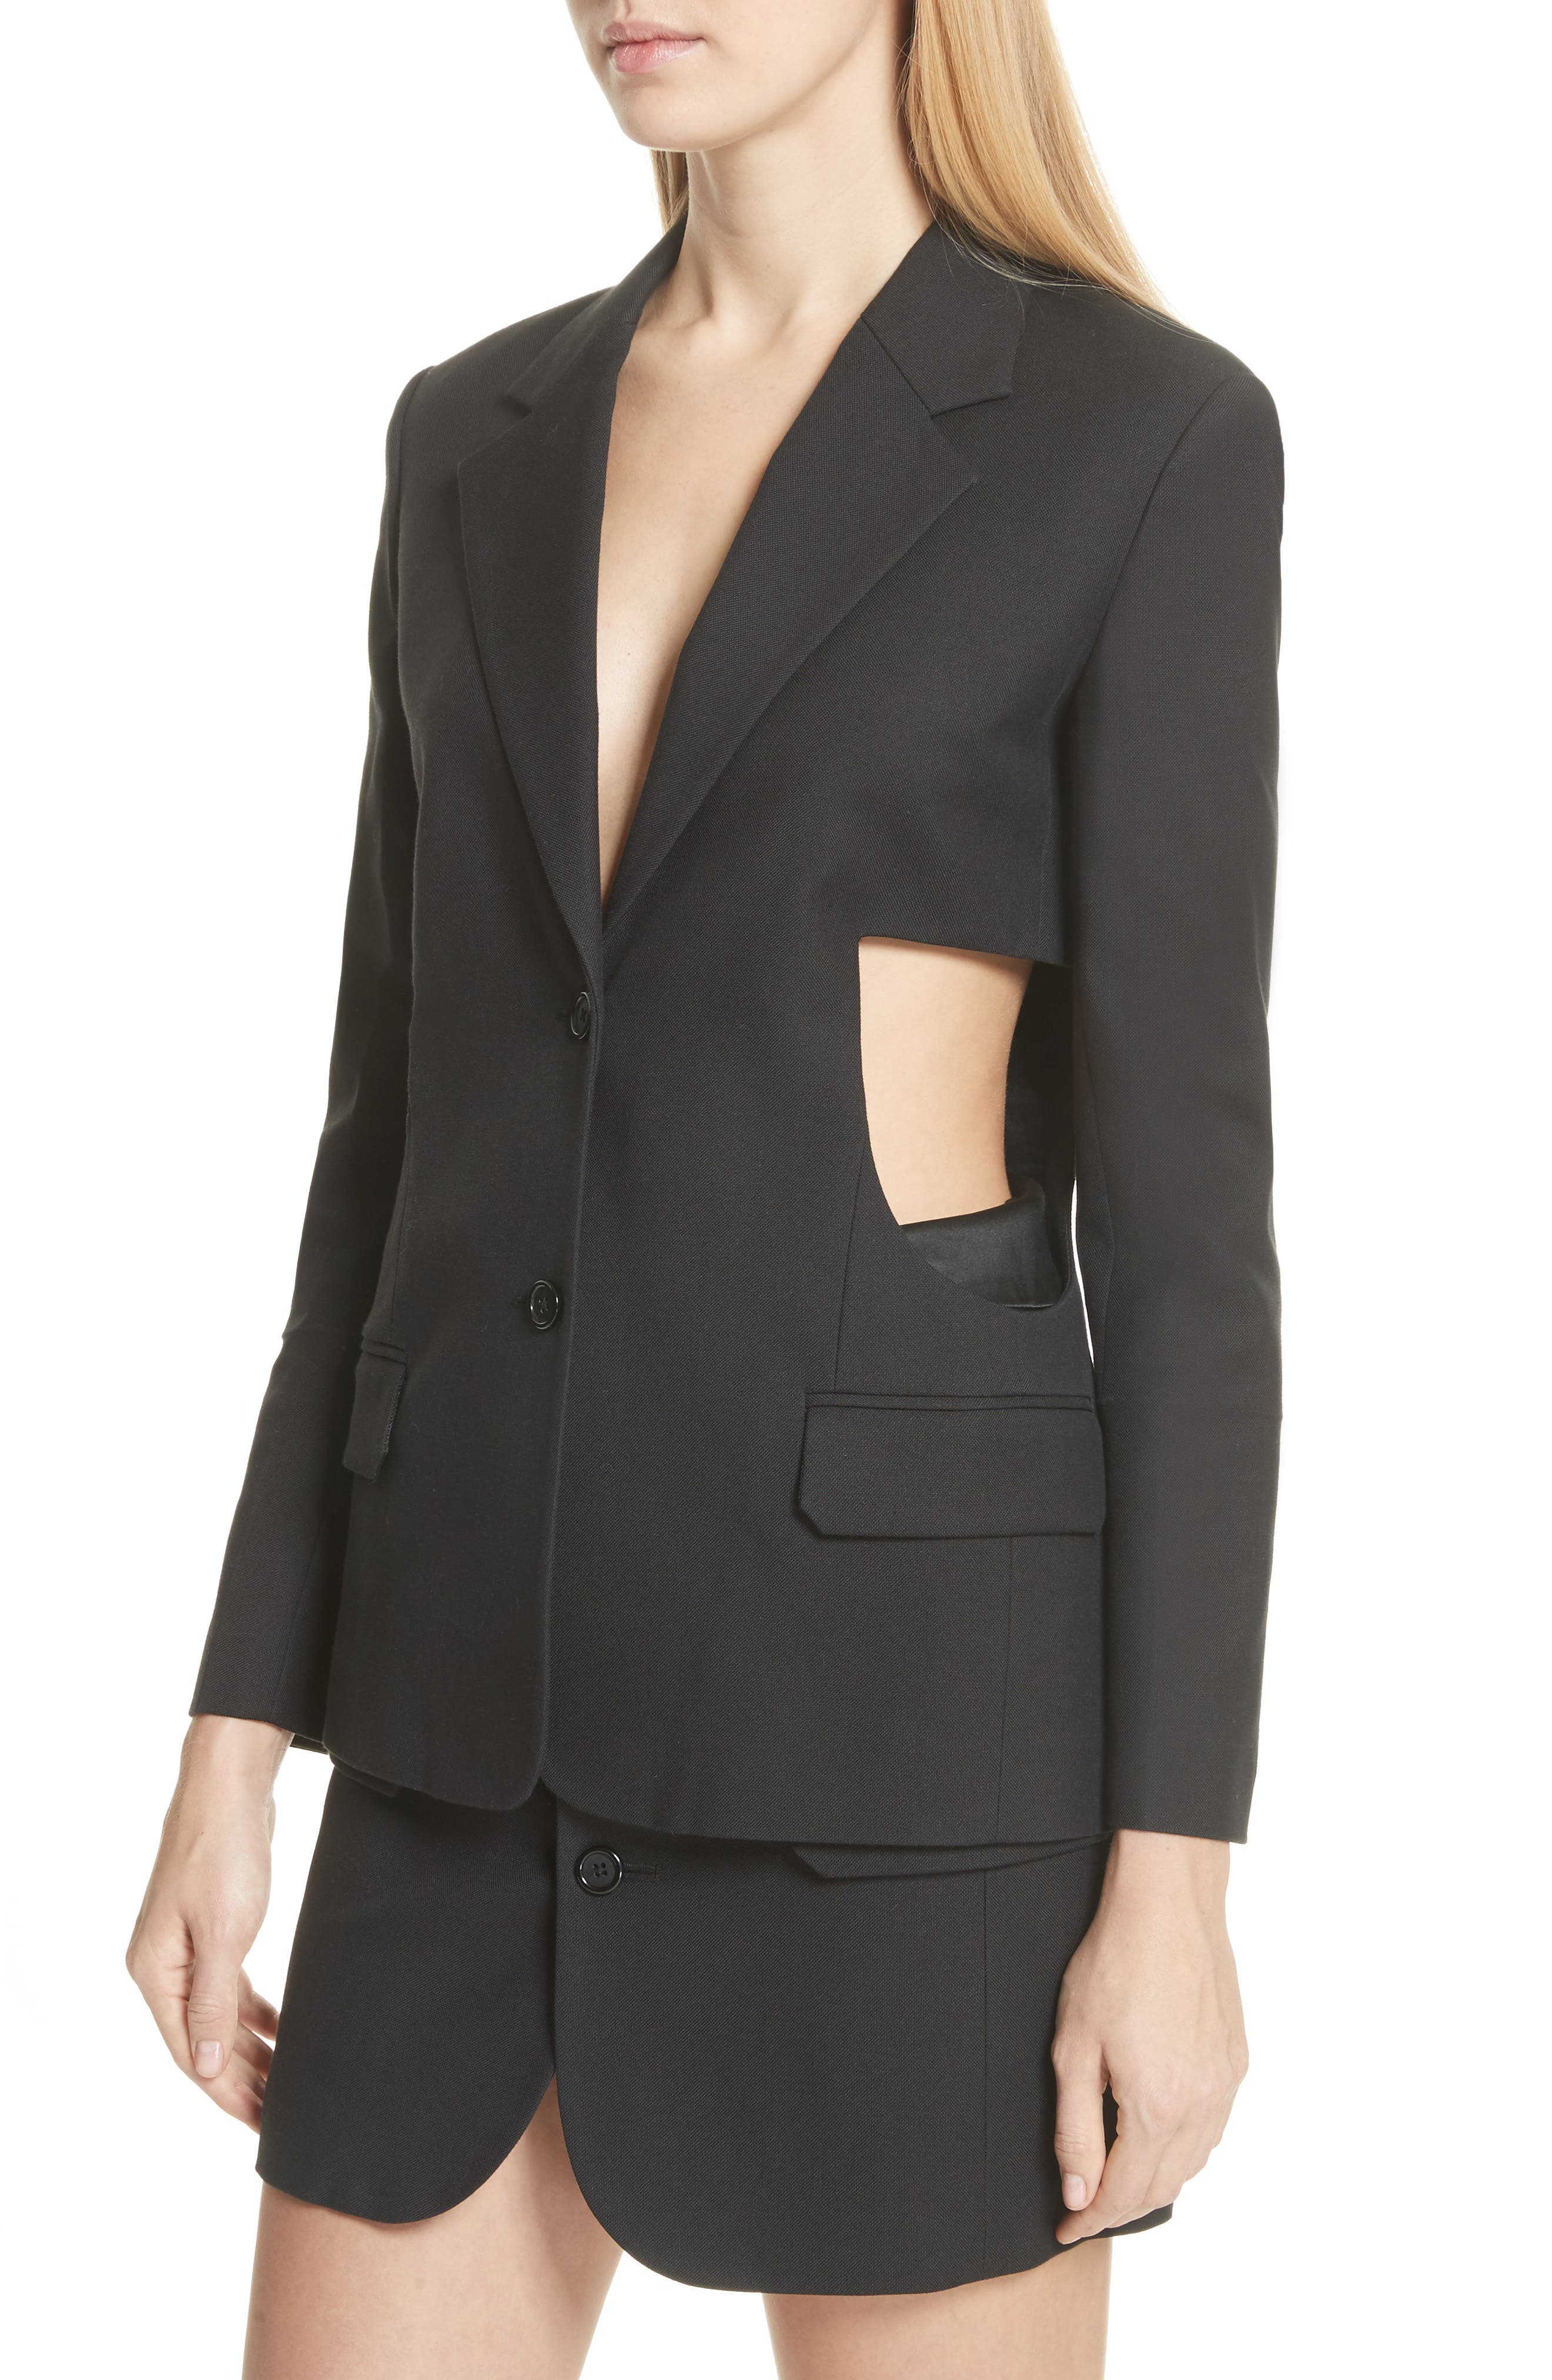 HELMUT LANG,                             Cutout Waist Blazer,                             Alternate thumbnail 4, color,                             001